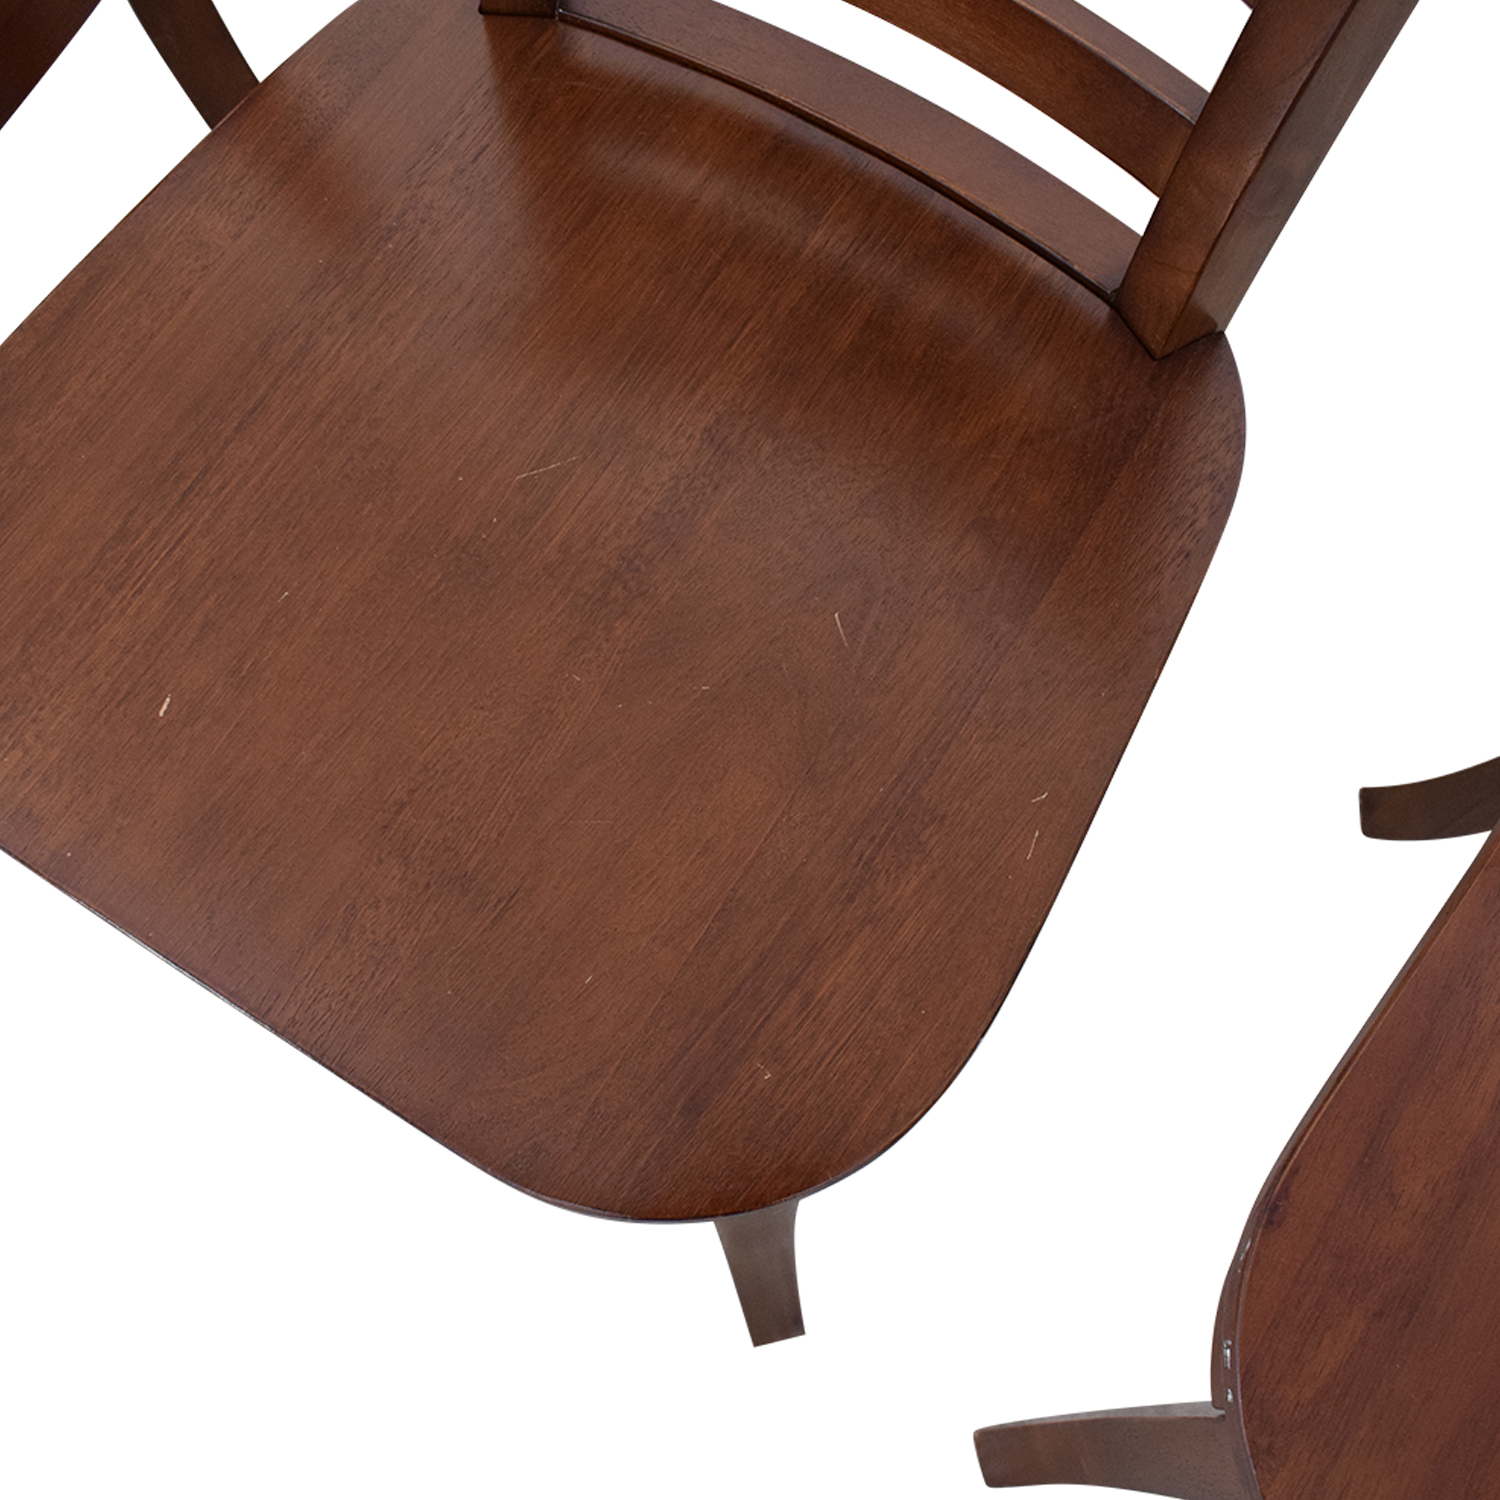 Pottery Barn Pottery Barn Liam Dining Side Chairs on sale